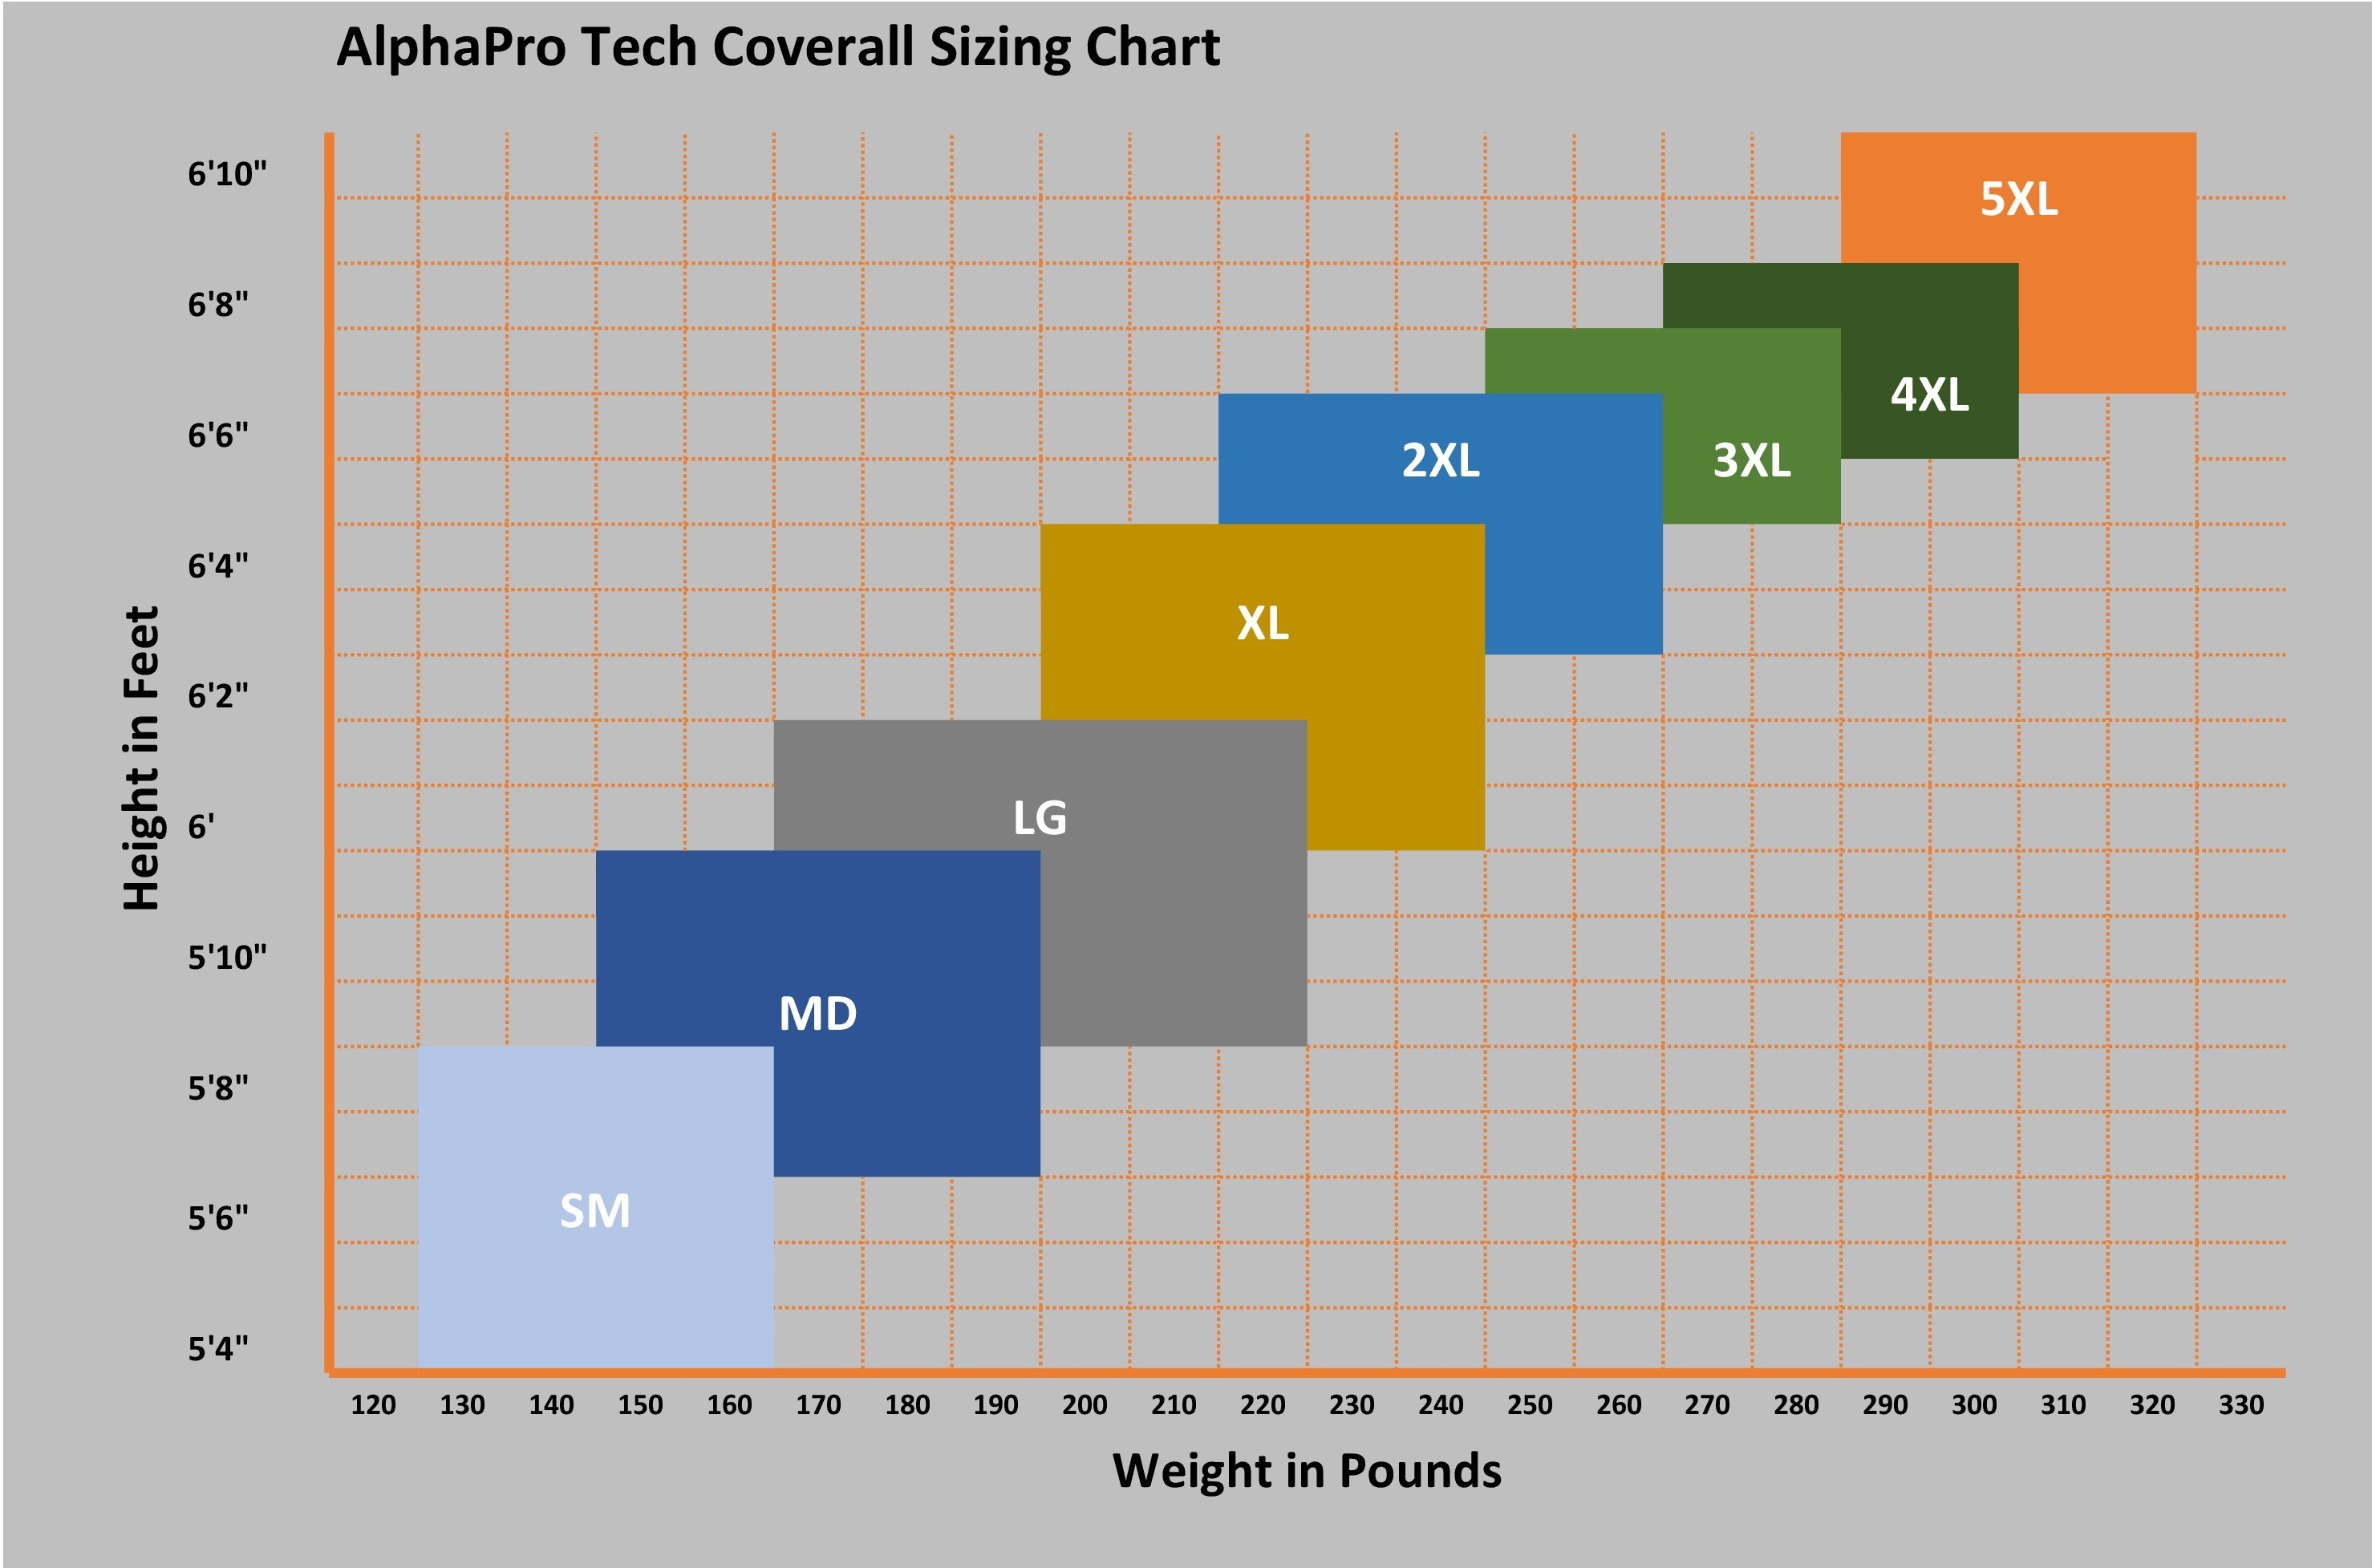 AlphaProTech Sizing Chart